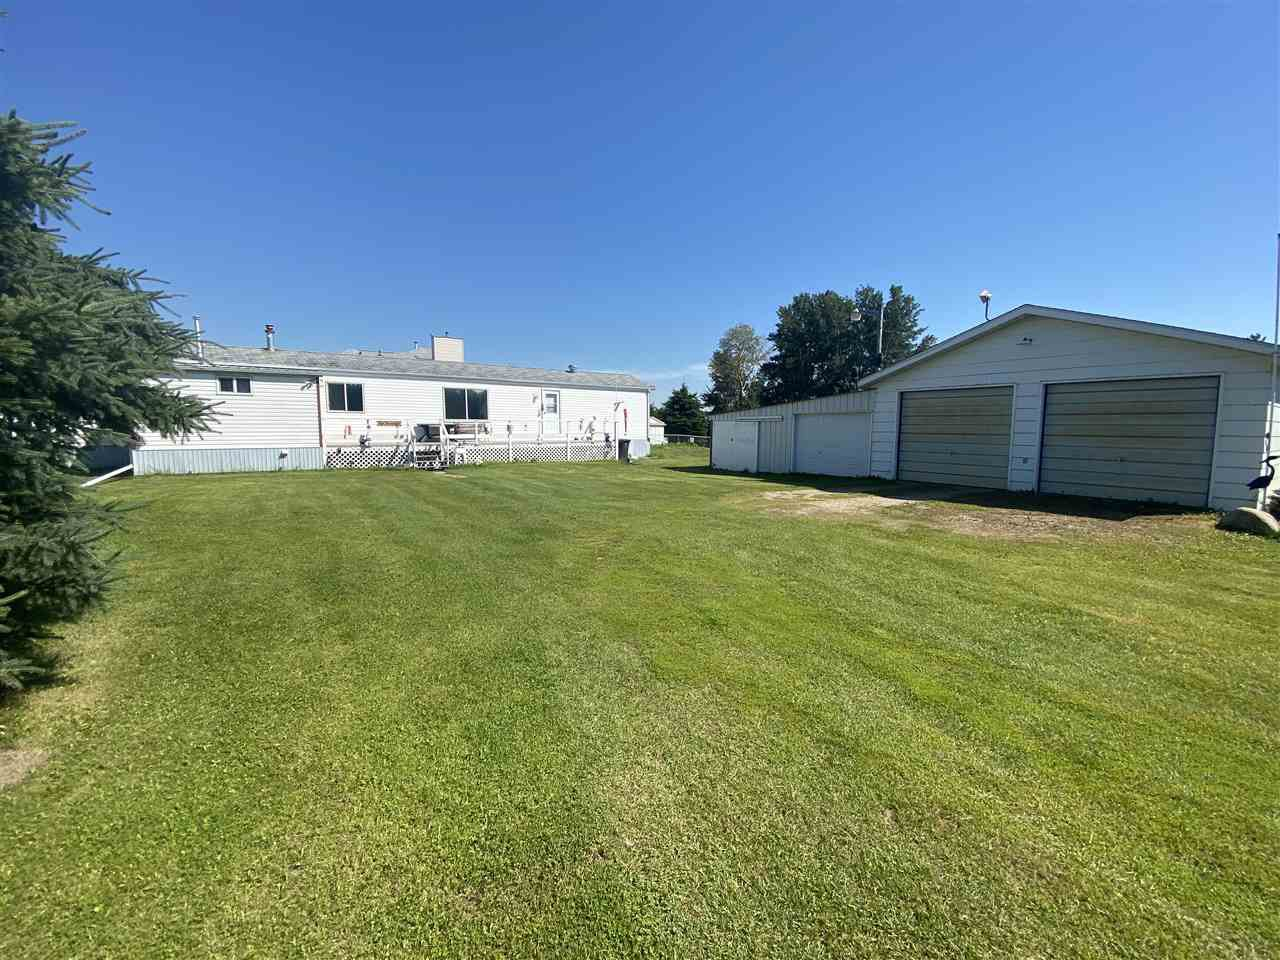 Main Photo: 60 Buskmose Dr: Rural Wetaskiwin County Manufactured Home for sale : MLS®# E4208216